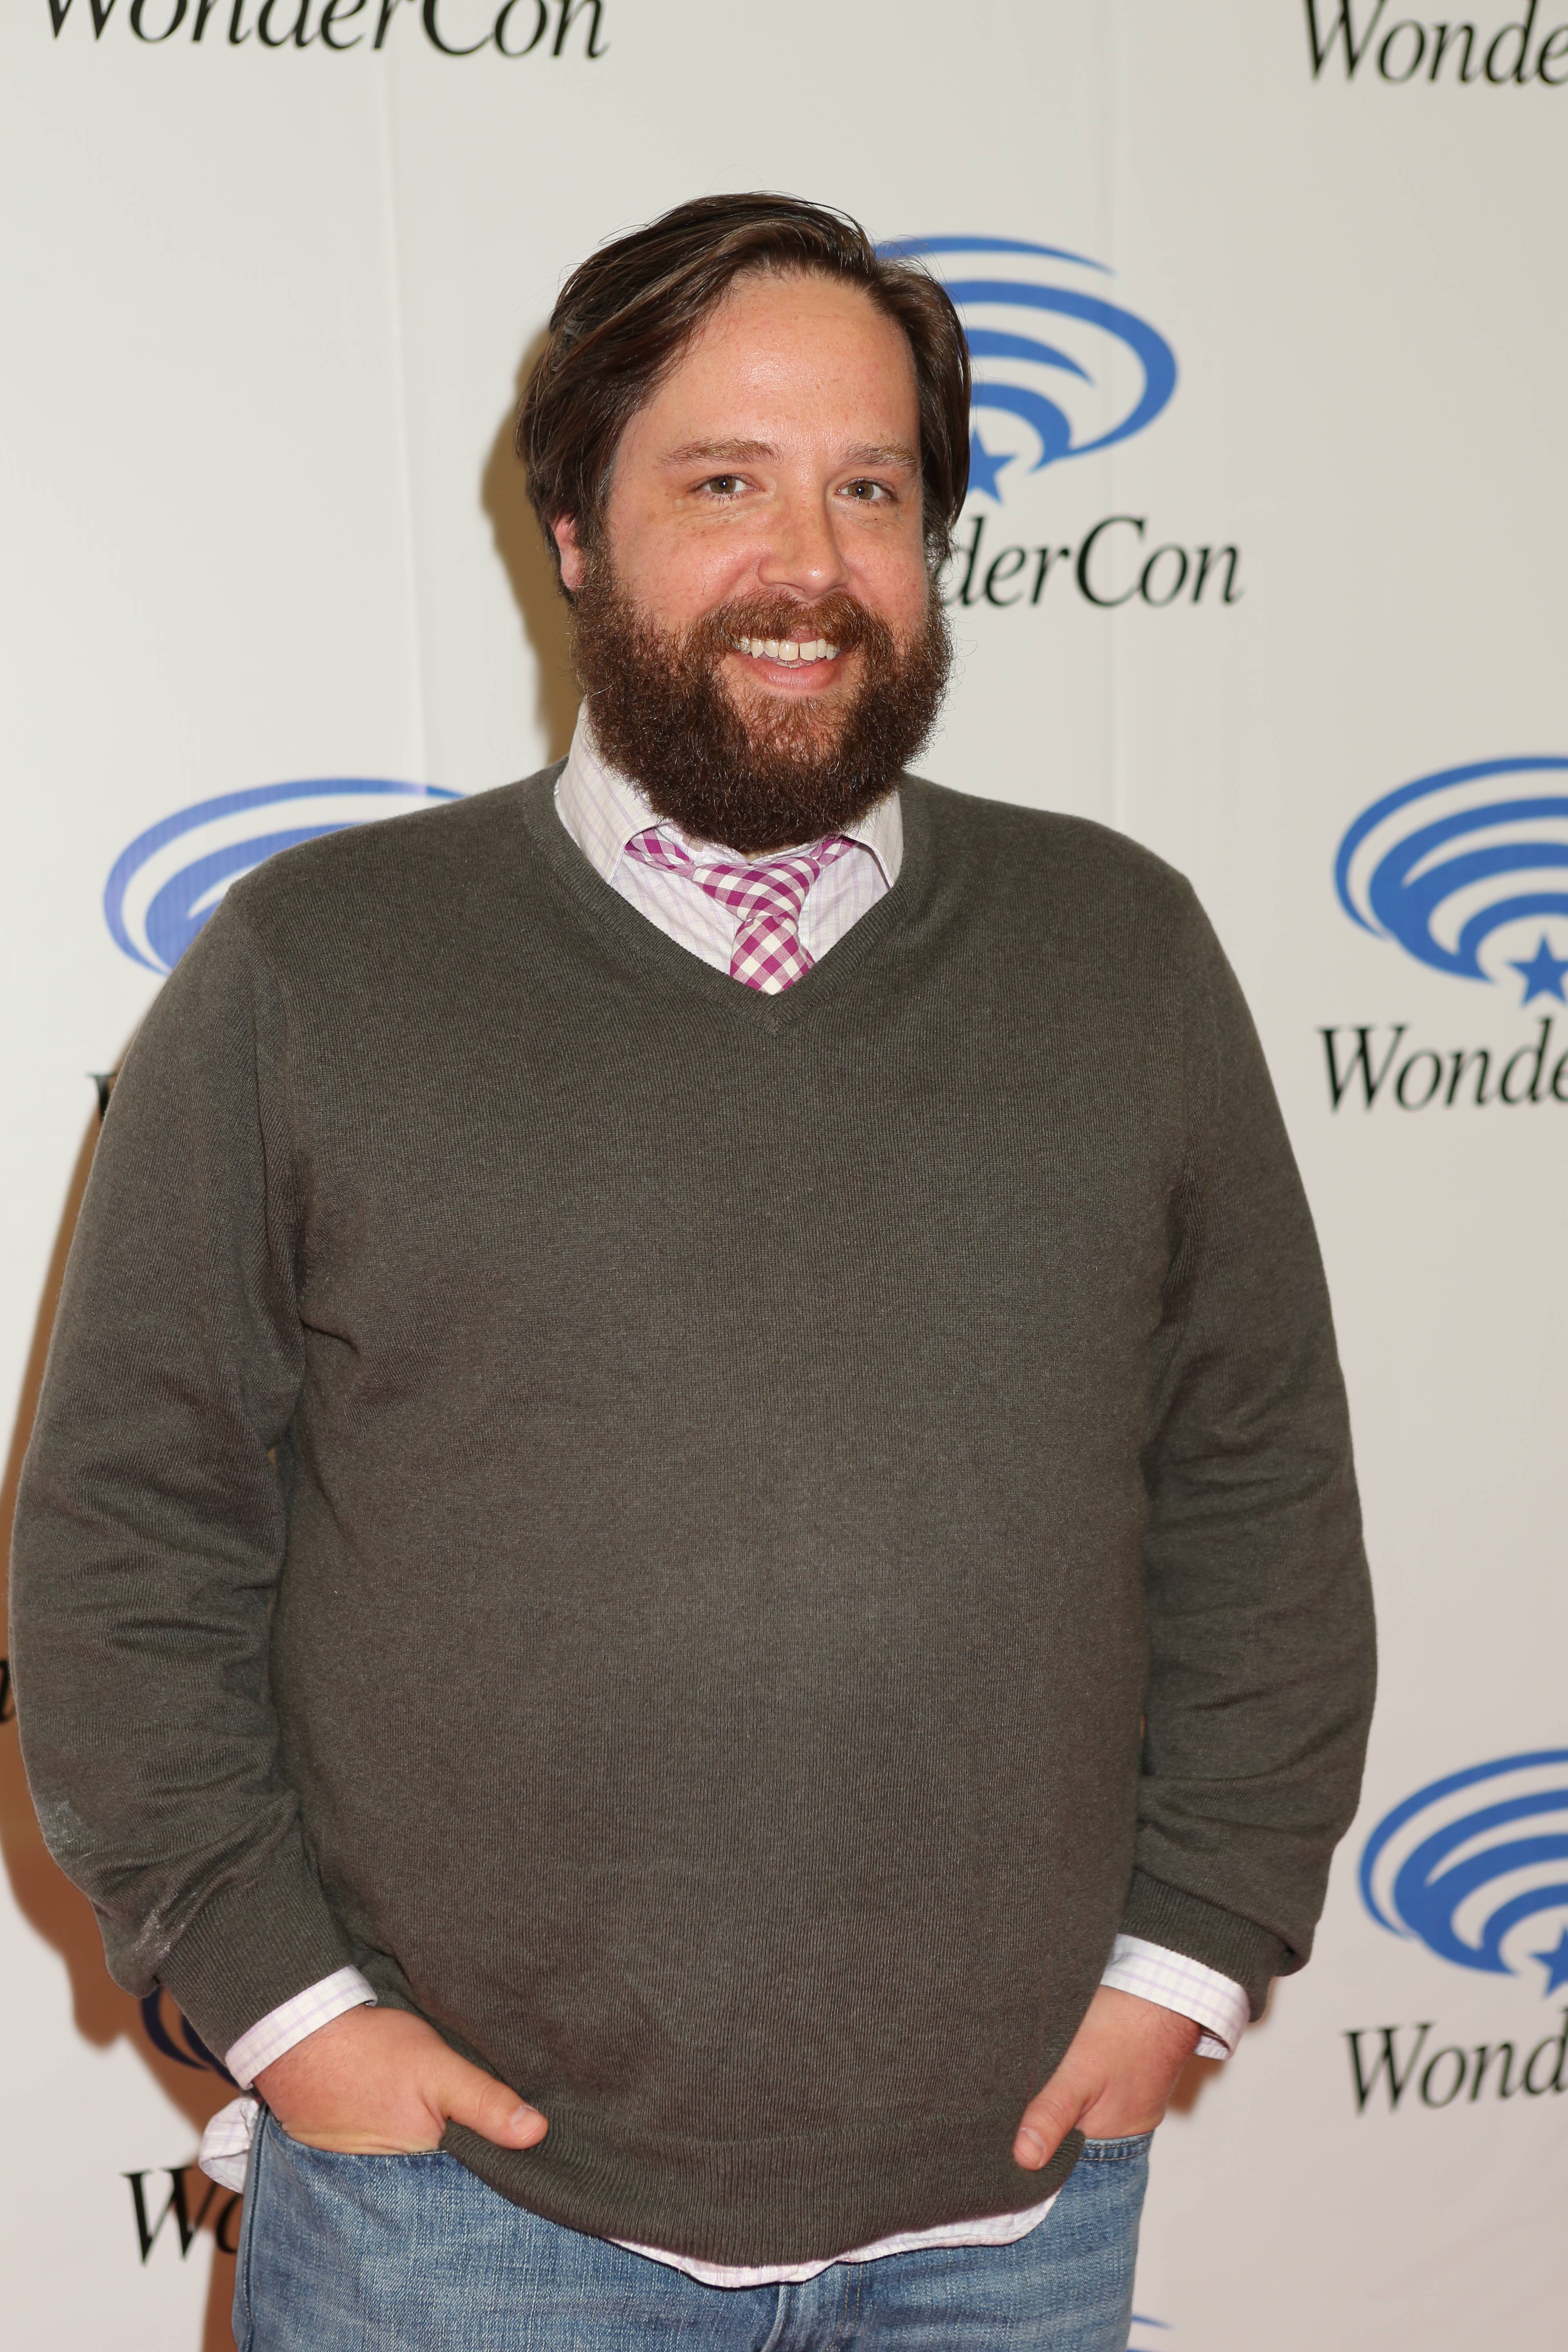 zak orth filmographyzak orth imdb, zak orth veep, zak orth wife, zak orth weight loss, zak orth movies and tv shows, zak orth romeo and juliet, zak orth net worth, zak orth revolution, zak orth walking dead, zak orth wiki, zak orth fringe, zak orth married, zak orth gay, zak orth bates motel, zak orth instagram, zak orth filmography, zak orth 2015, zak orth happyish, zak orth commercial, zak orth jewish